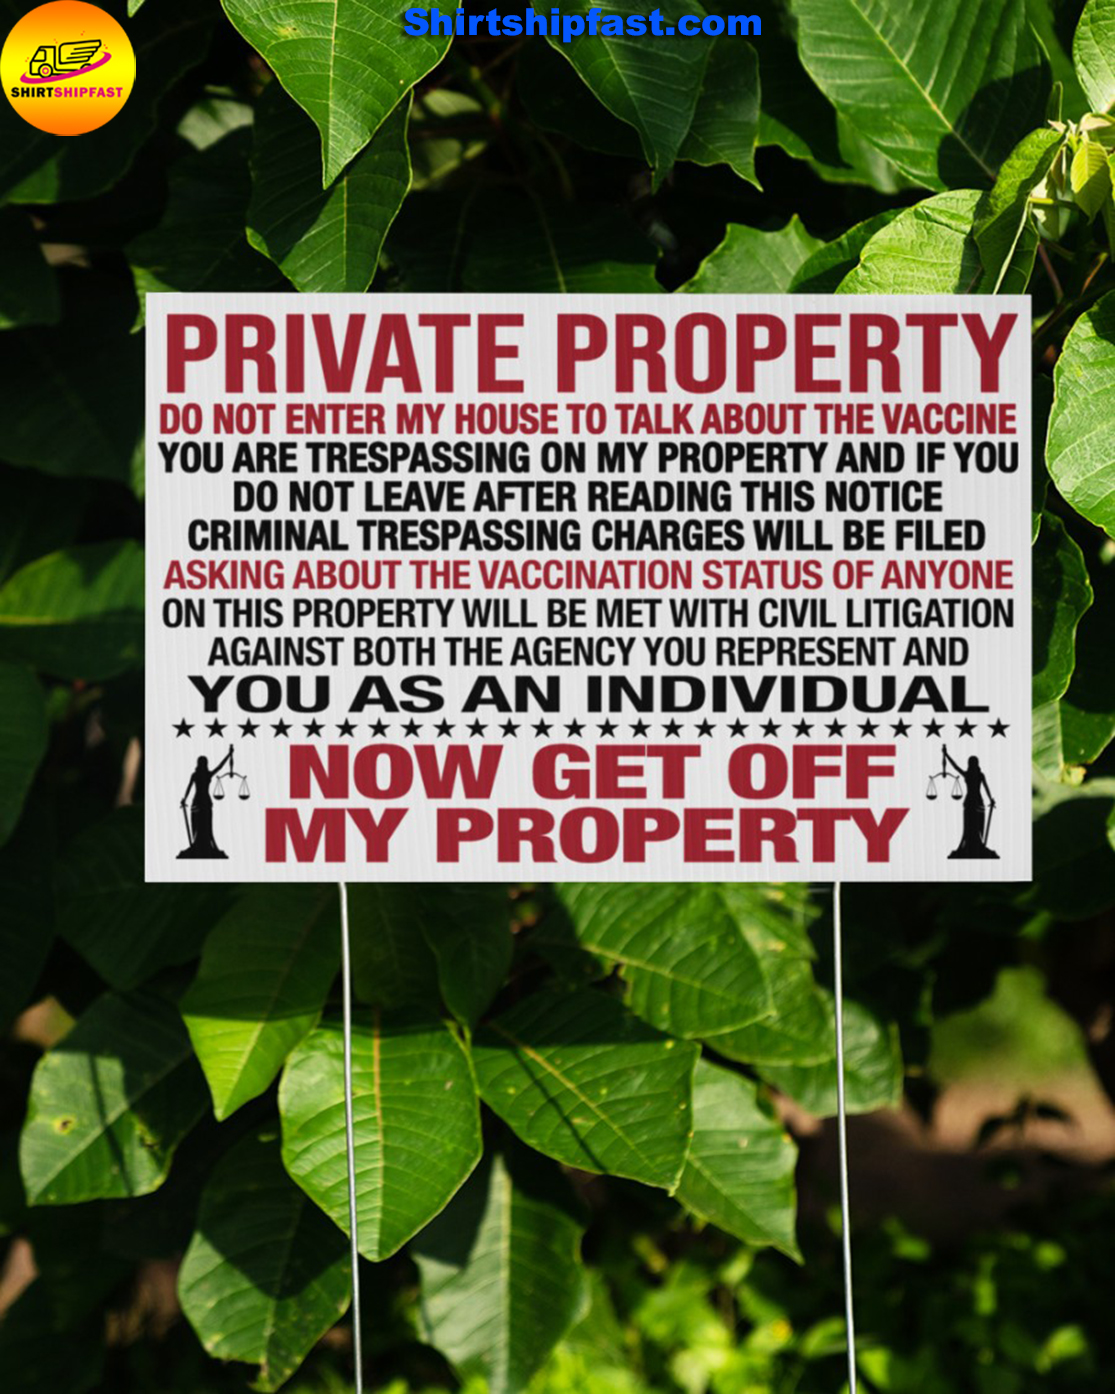 Private property do not enter my house to talk about the vaccine yard signs - Picture 3